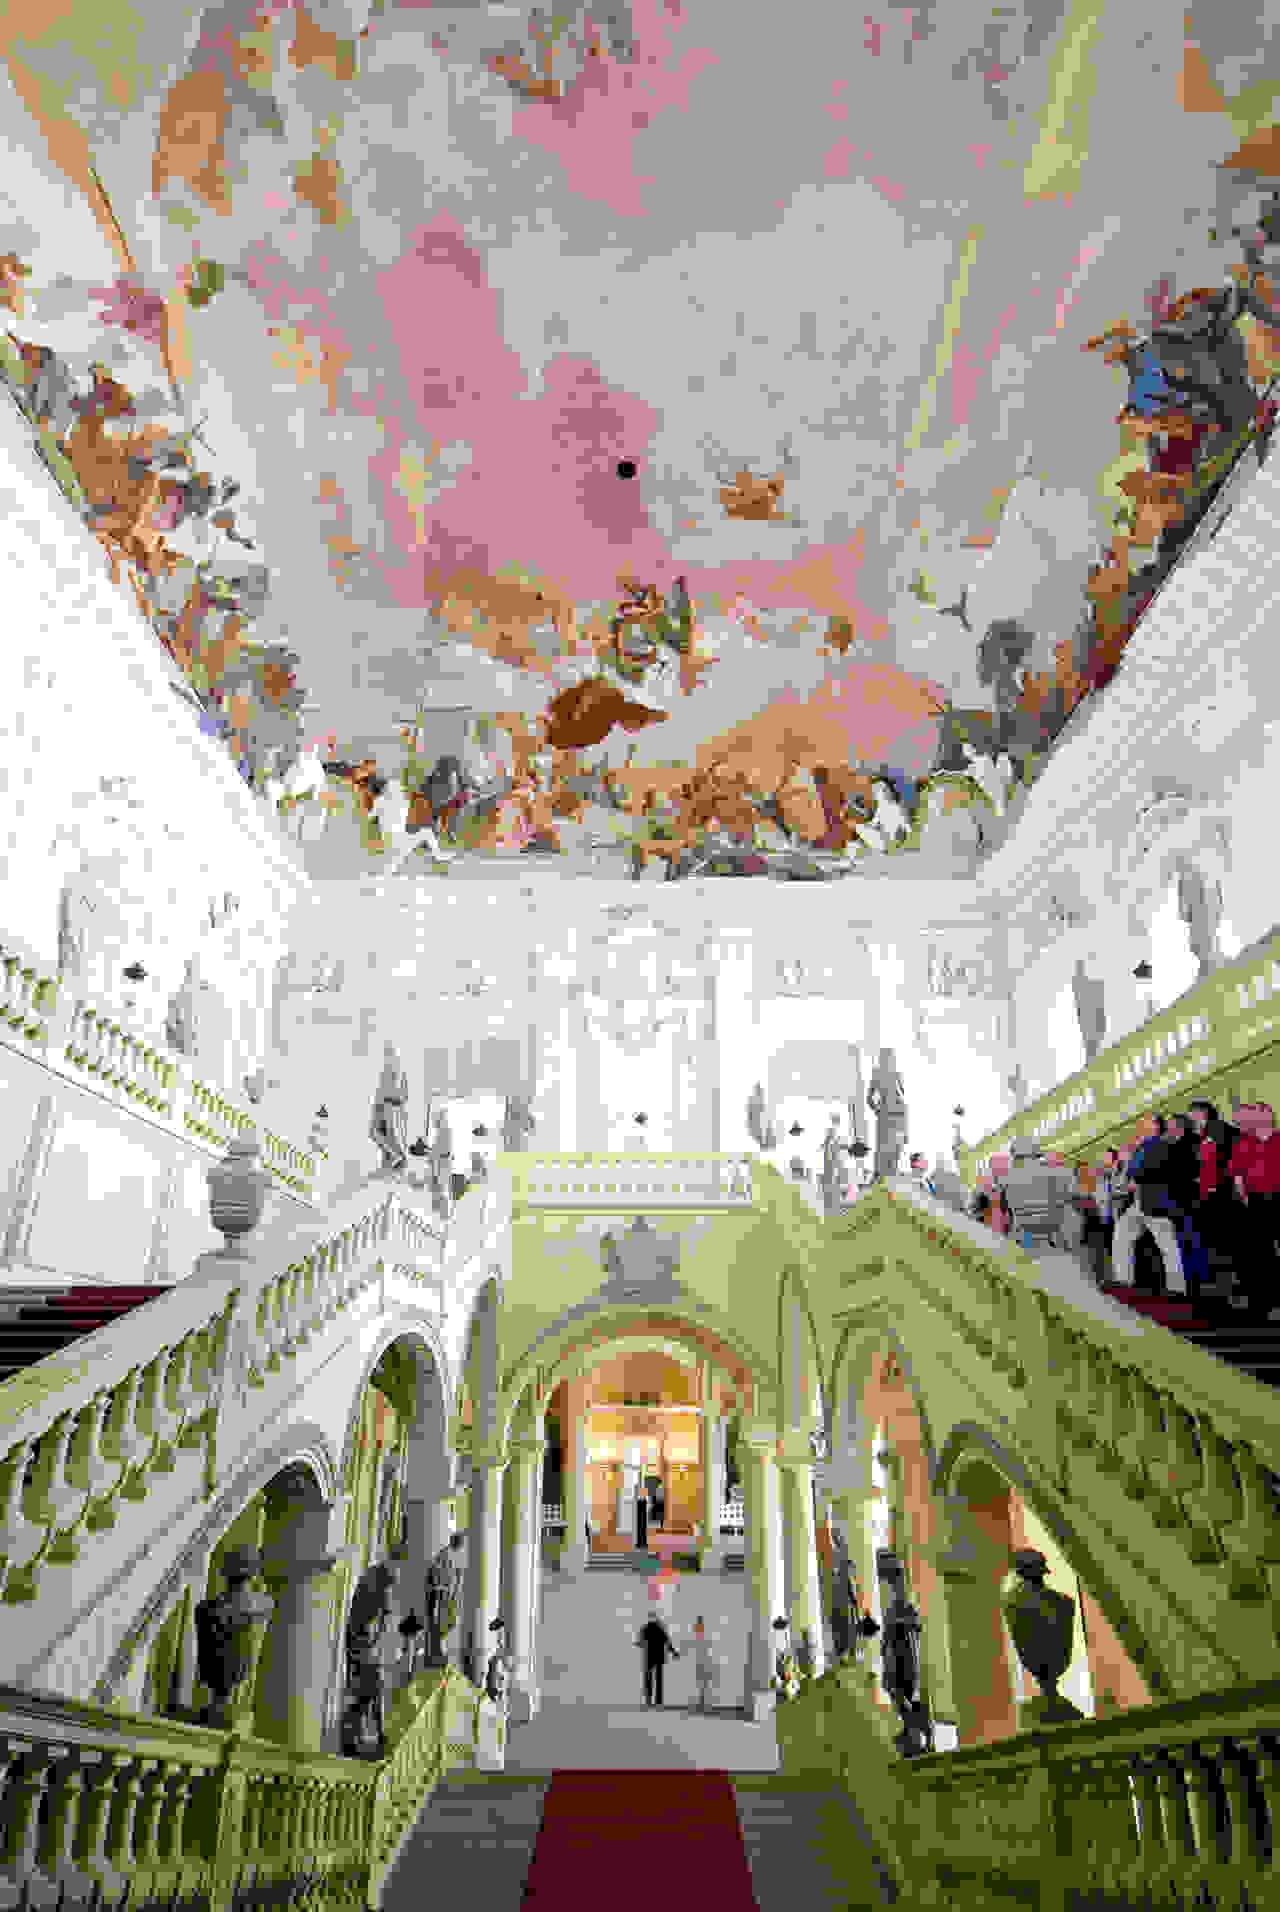 Staircase in Wüzburg Residence (1749-51) | Source: germany.travel